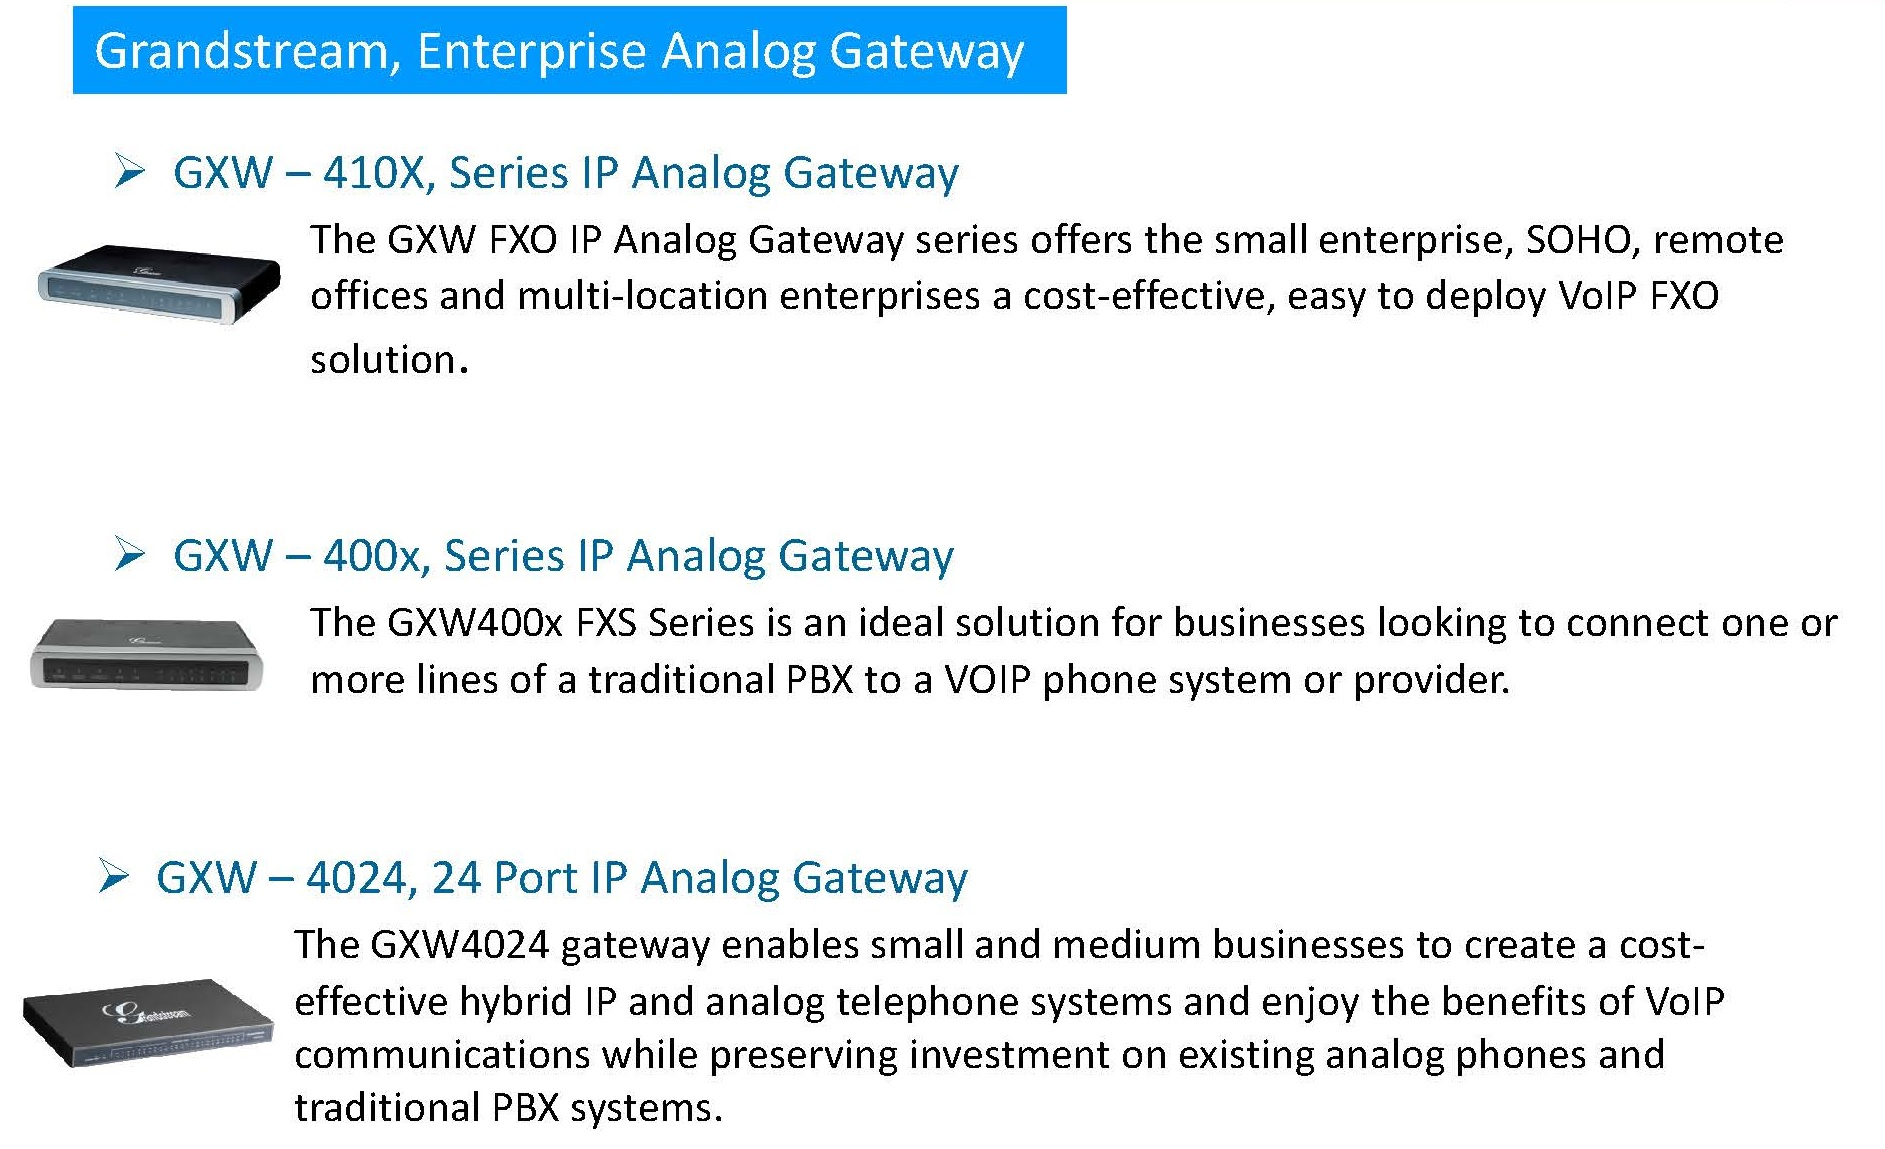 SDG Enterprise Voice Solution for SOHO and SMB segment Page 13